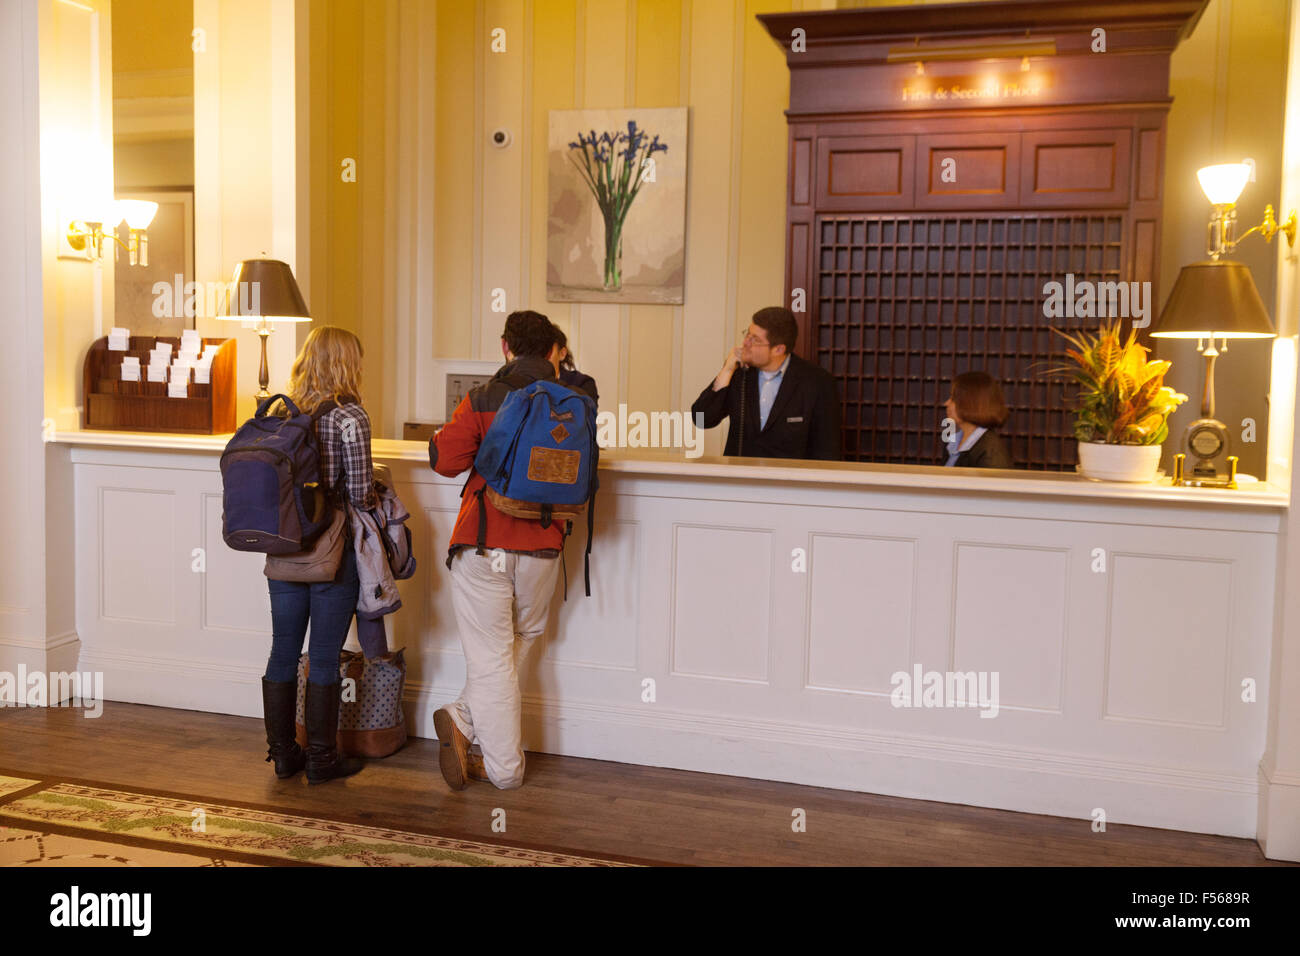 Guests at hotel reception, the luxury Mount Washington Hotel Resort, Bretton Woods, New Hampshire USA - Stock Image